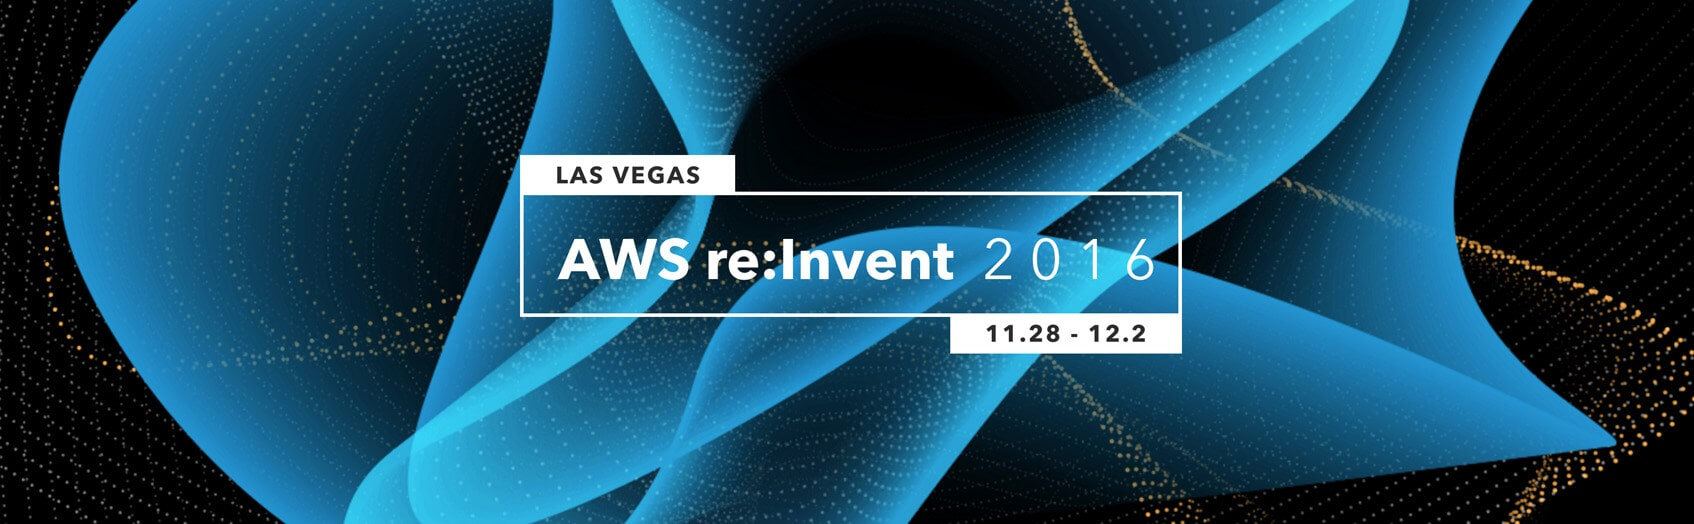 AWS re:Invent in Top tech events 2016, Q4 - guide by Redwerk